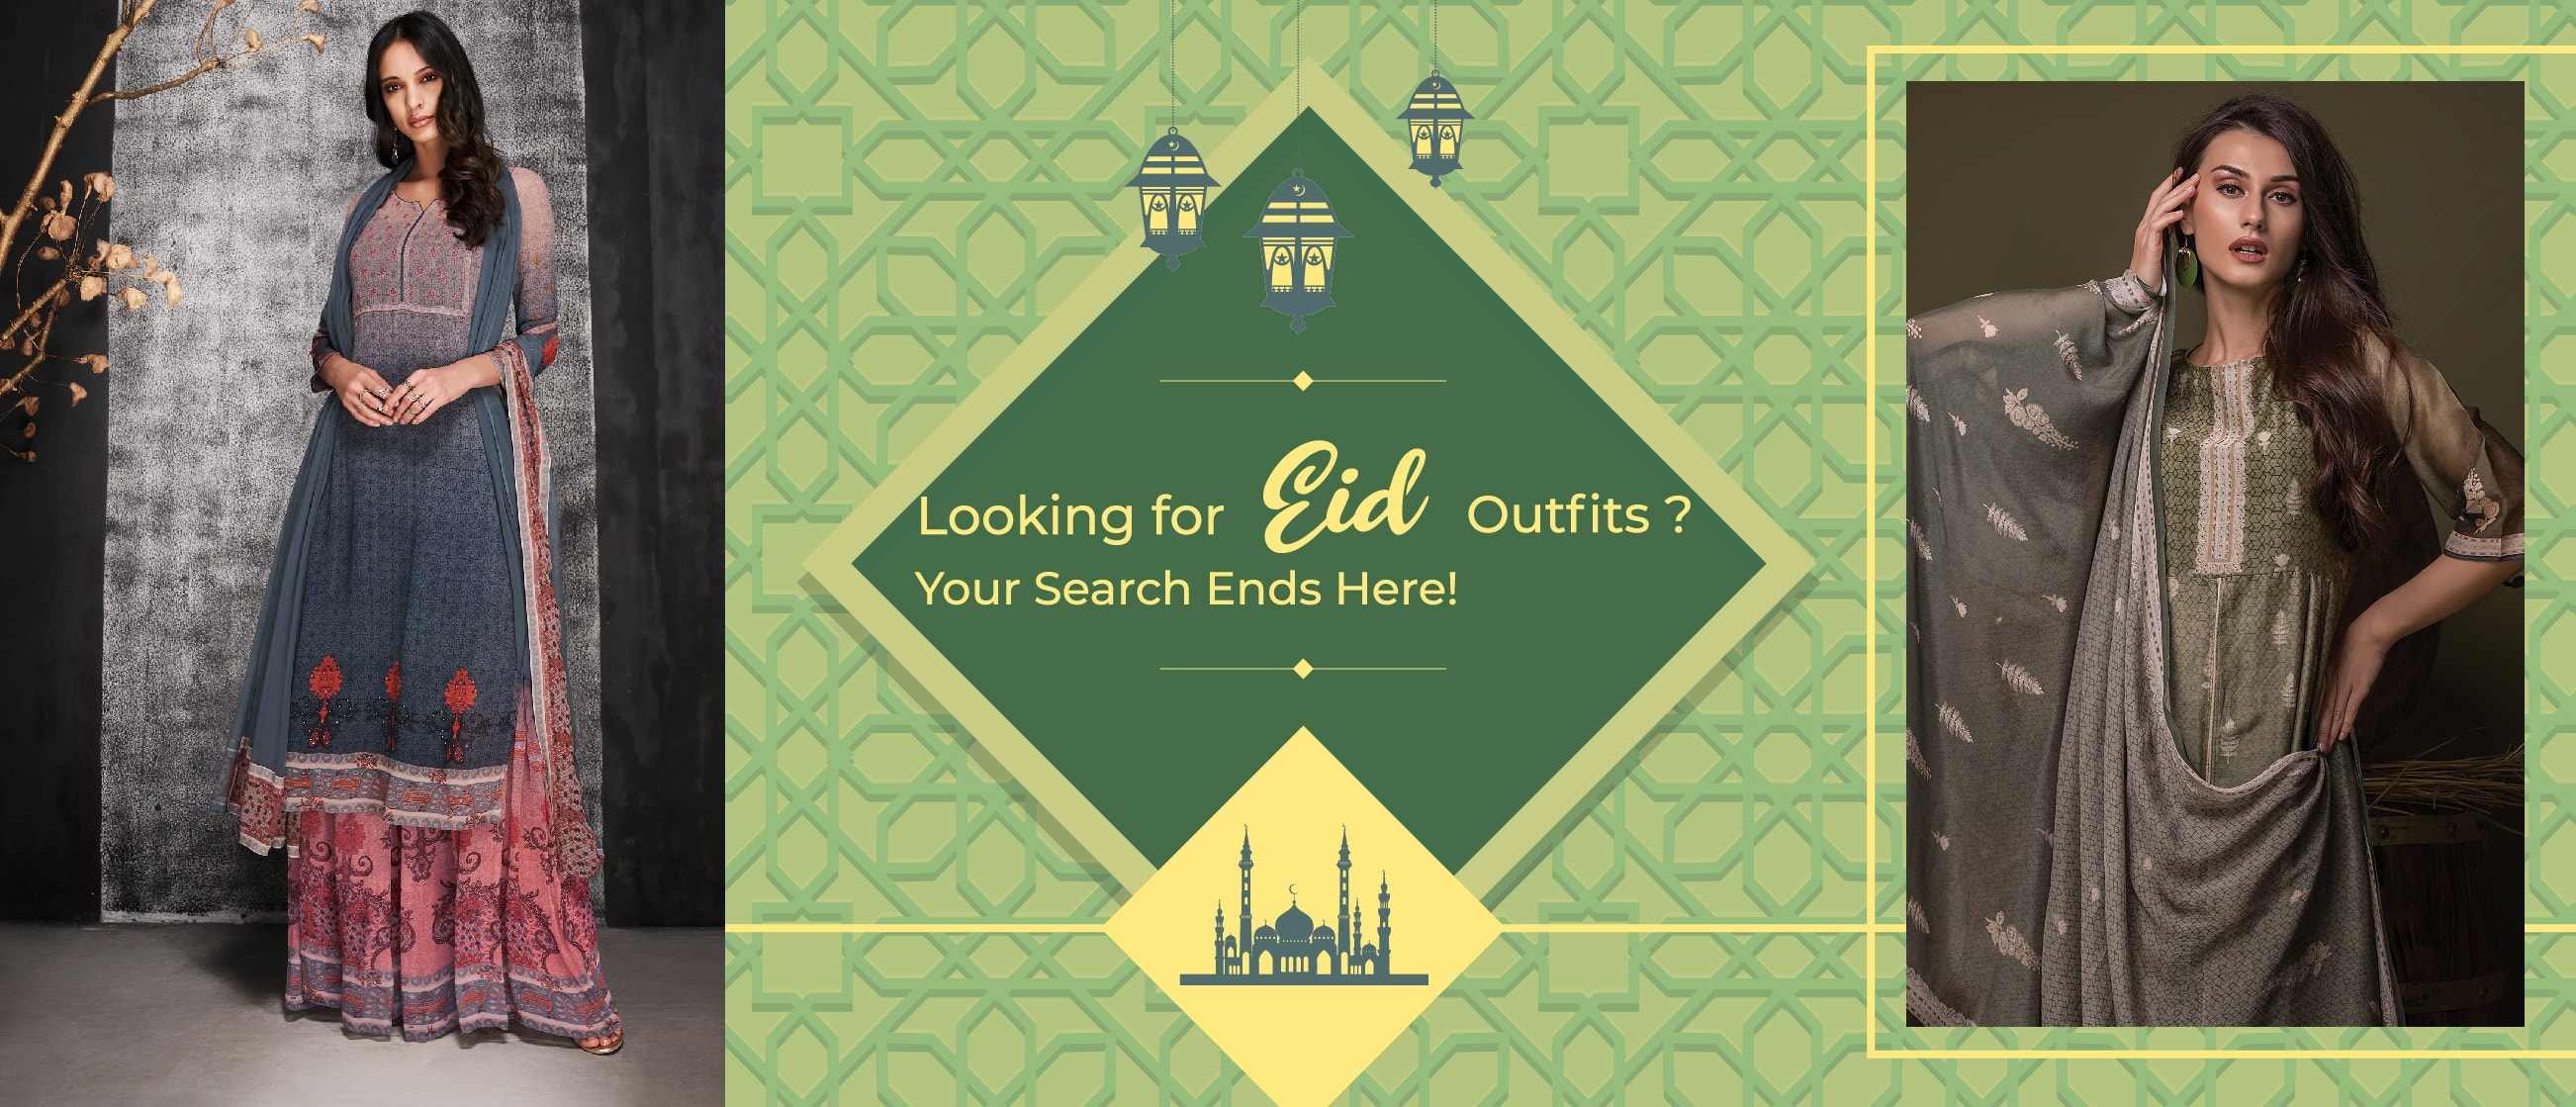 Looking for Eid Outfits? Your Search Ends Here!